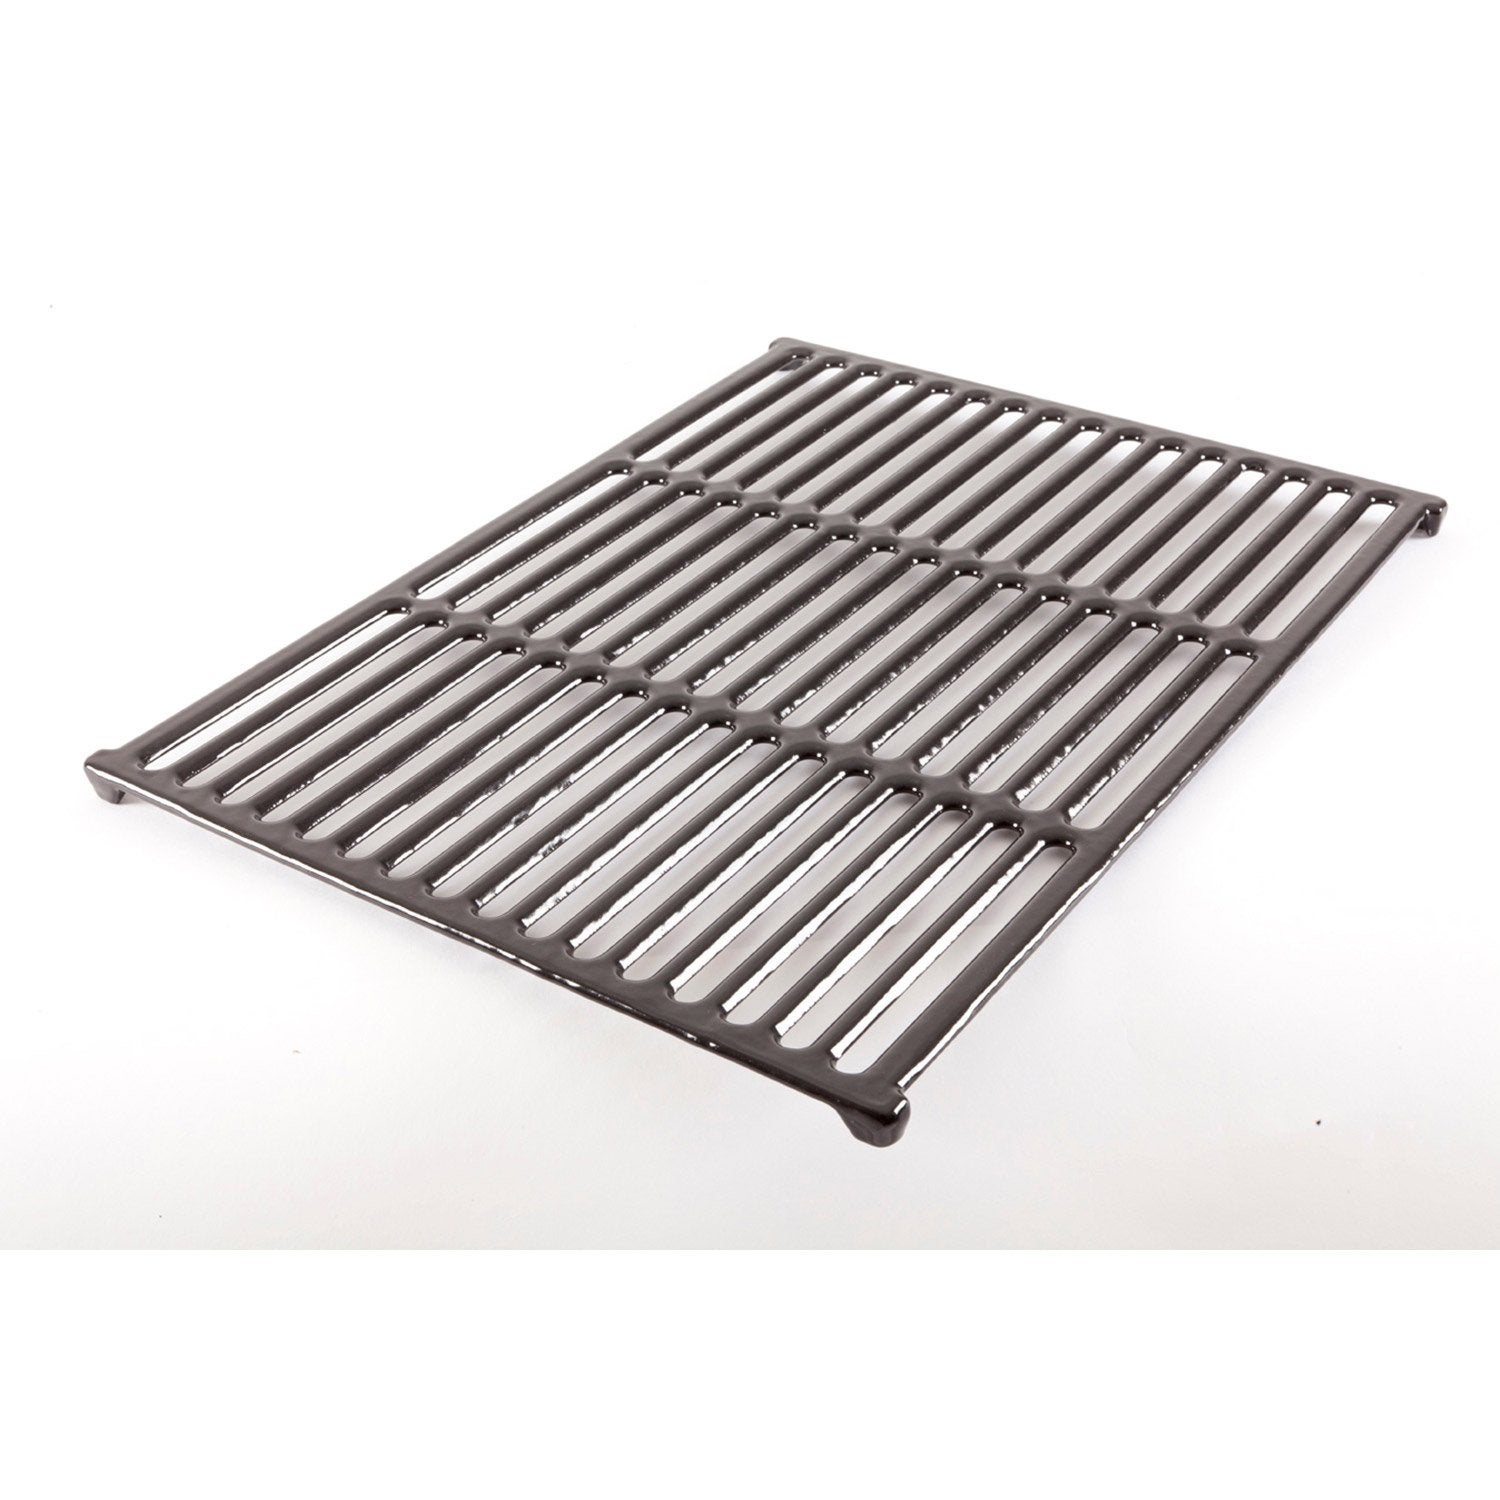 Grille naterial 4300 grl3 leroy merlin - Grille barbecue leroy merlin ...